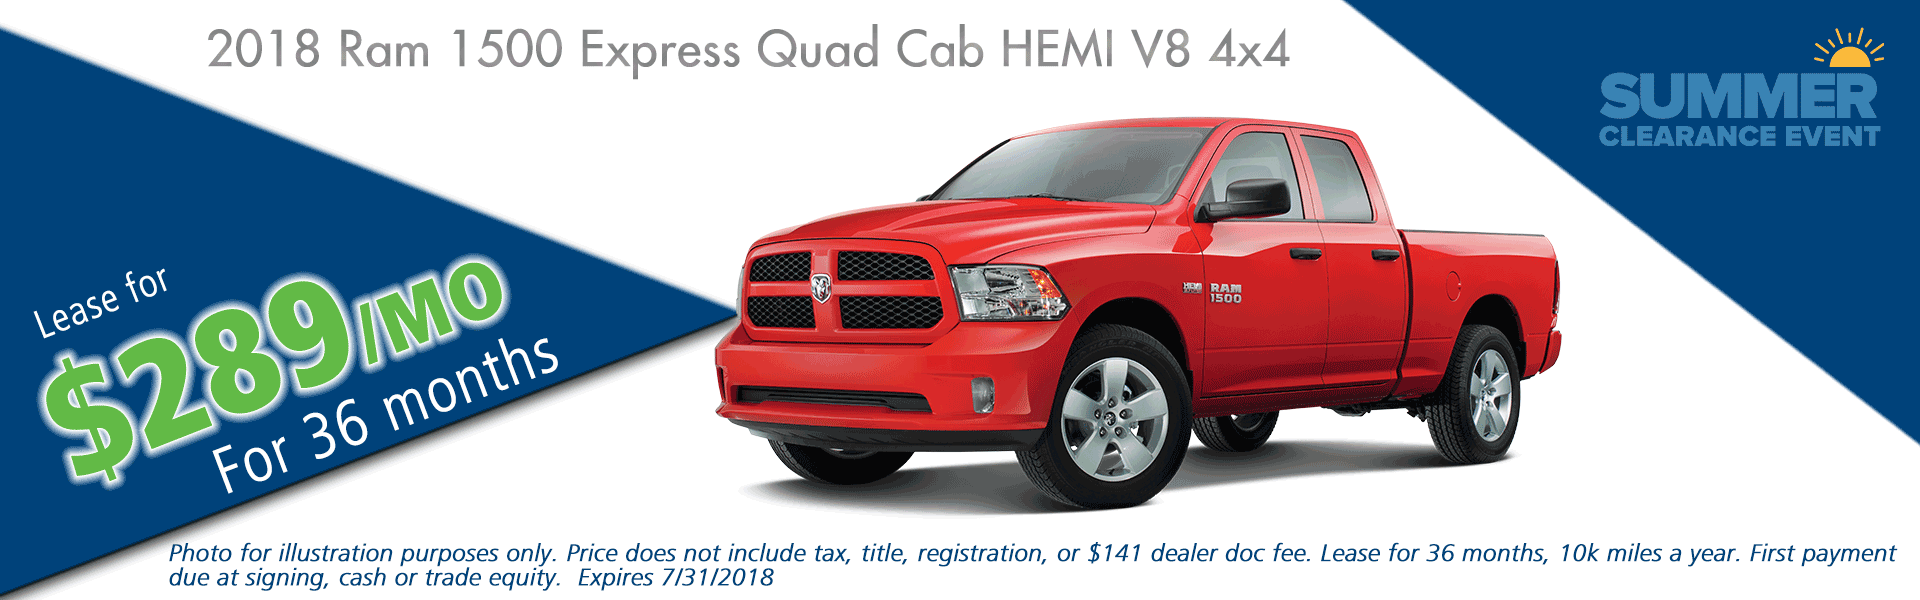 CarRight Auto Moon Township PA Chrysler Dodge Jeep Ram NEW 2018 RAM 1500 EXPRESS QUAD CAB 4X4 6'4